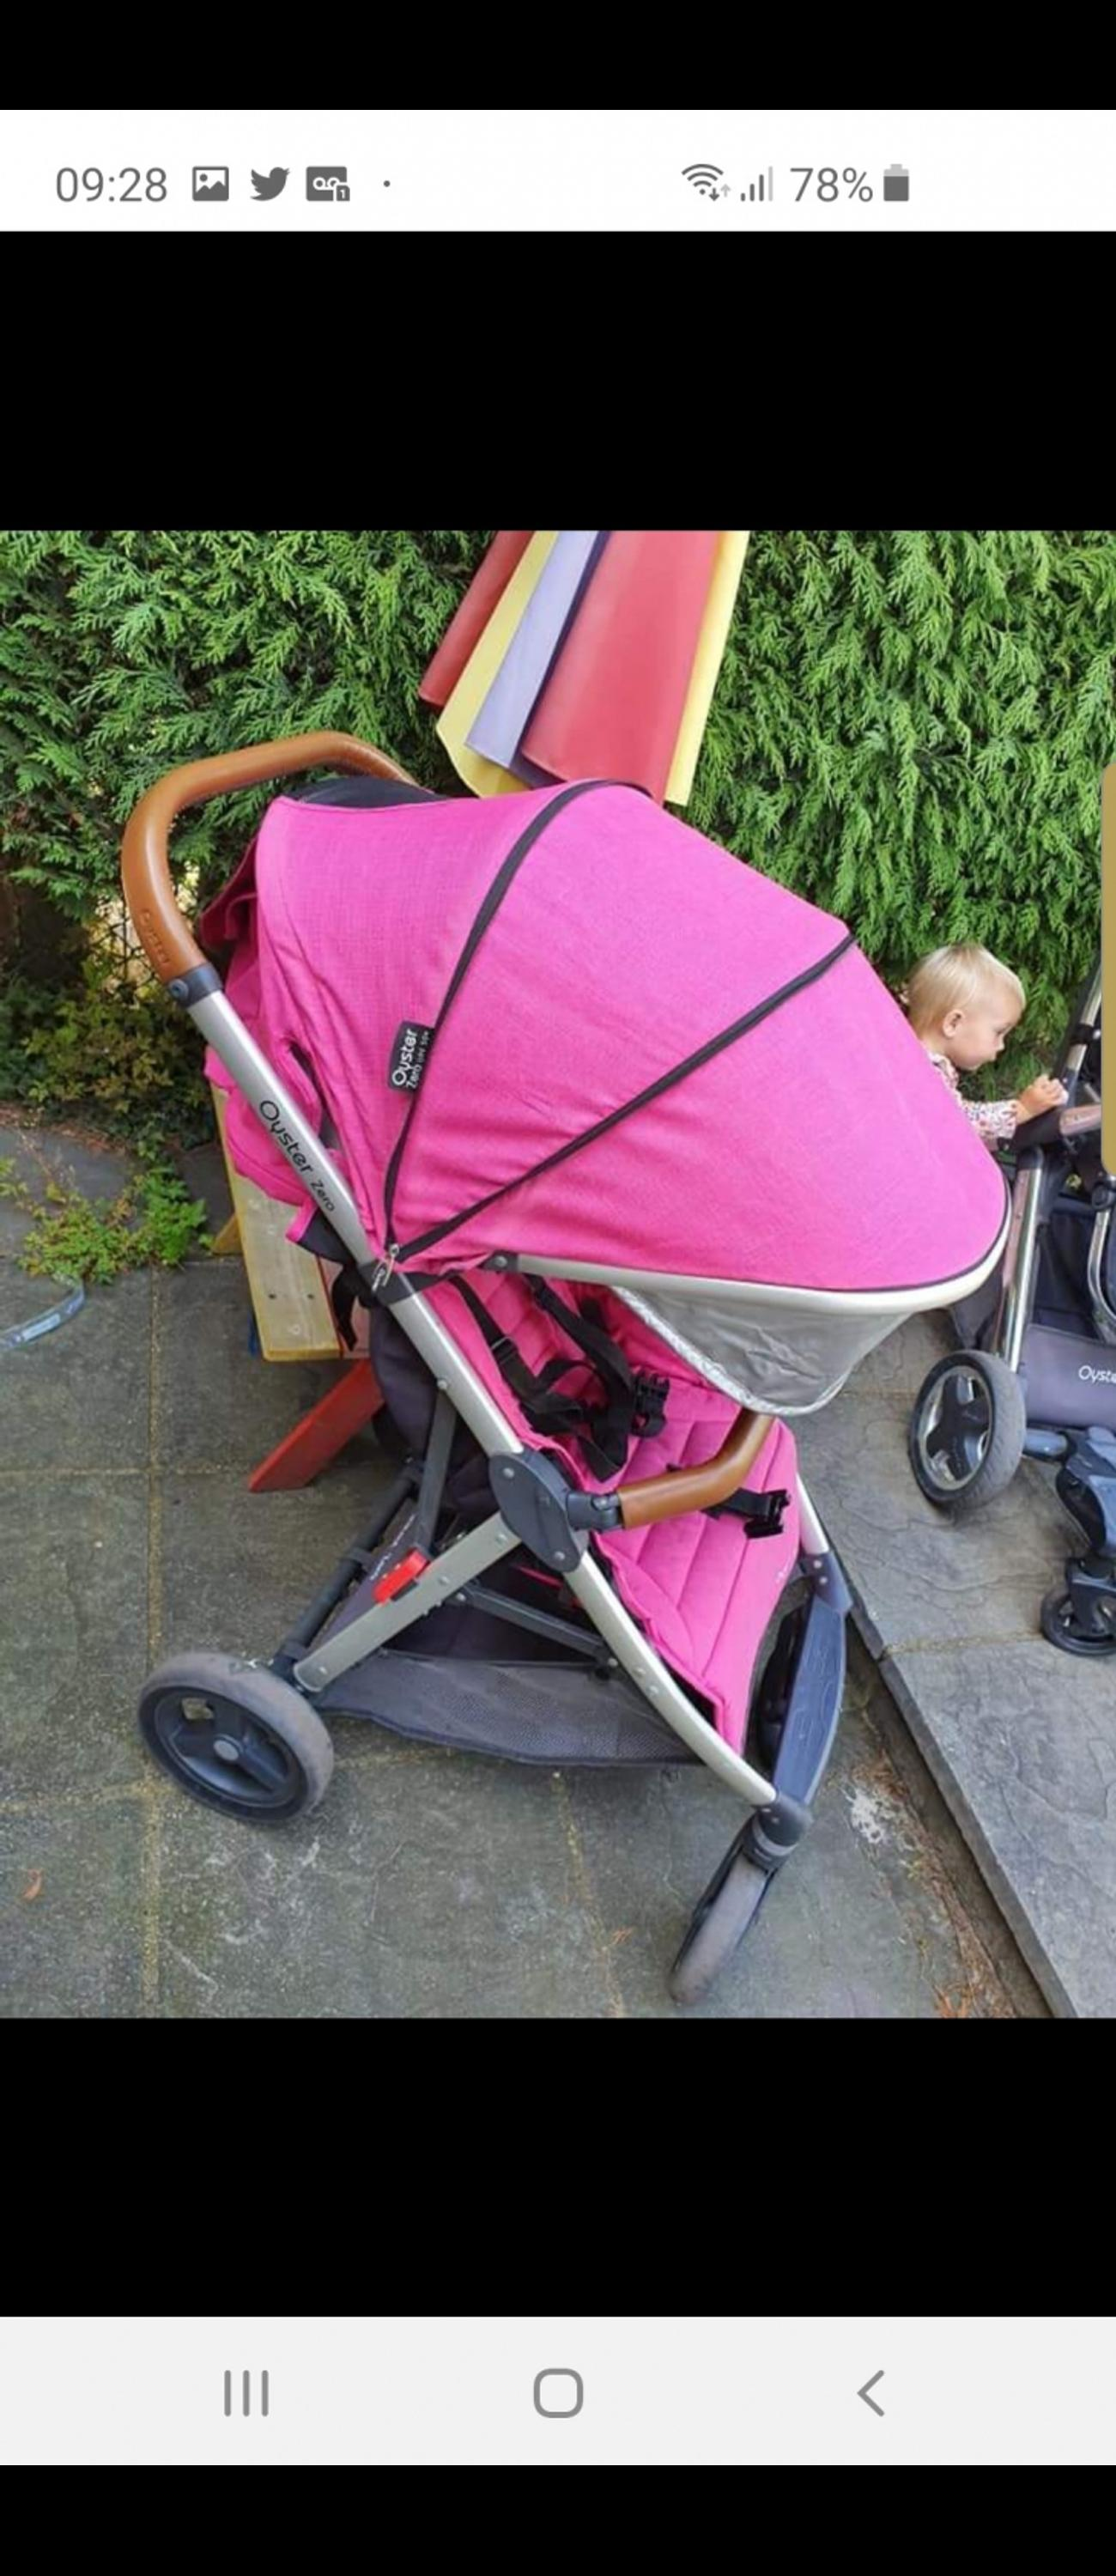 limited edition hot pink. need gone asap great size seat! lovely to push even off road